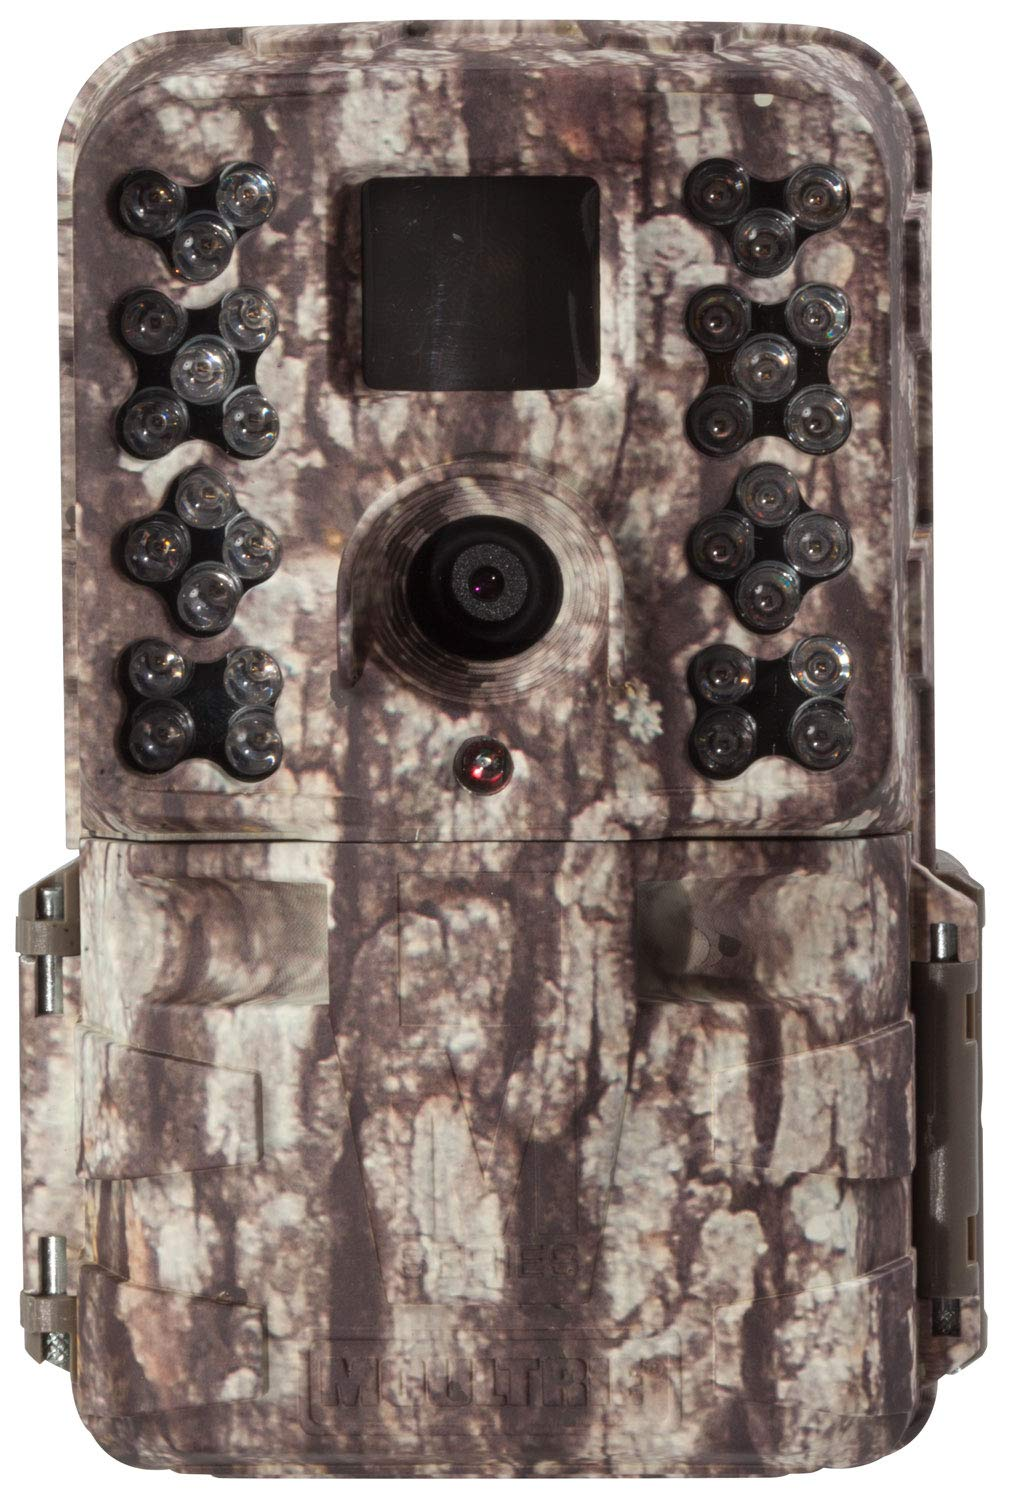 Moultrie M-Series Game Cameras (2017) | Management Series| 16 MP | 0.3 S Trigger Speed | 1080P Video | Moultrie Mobile…